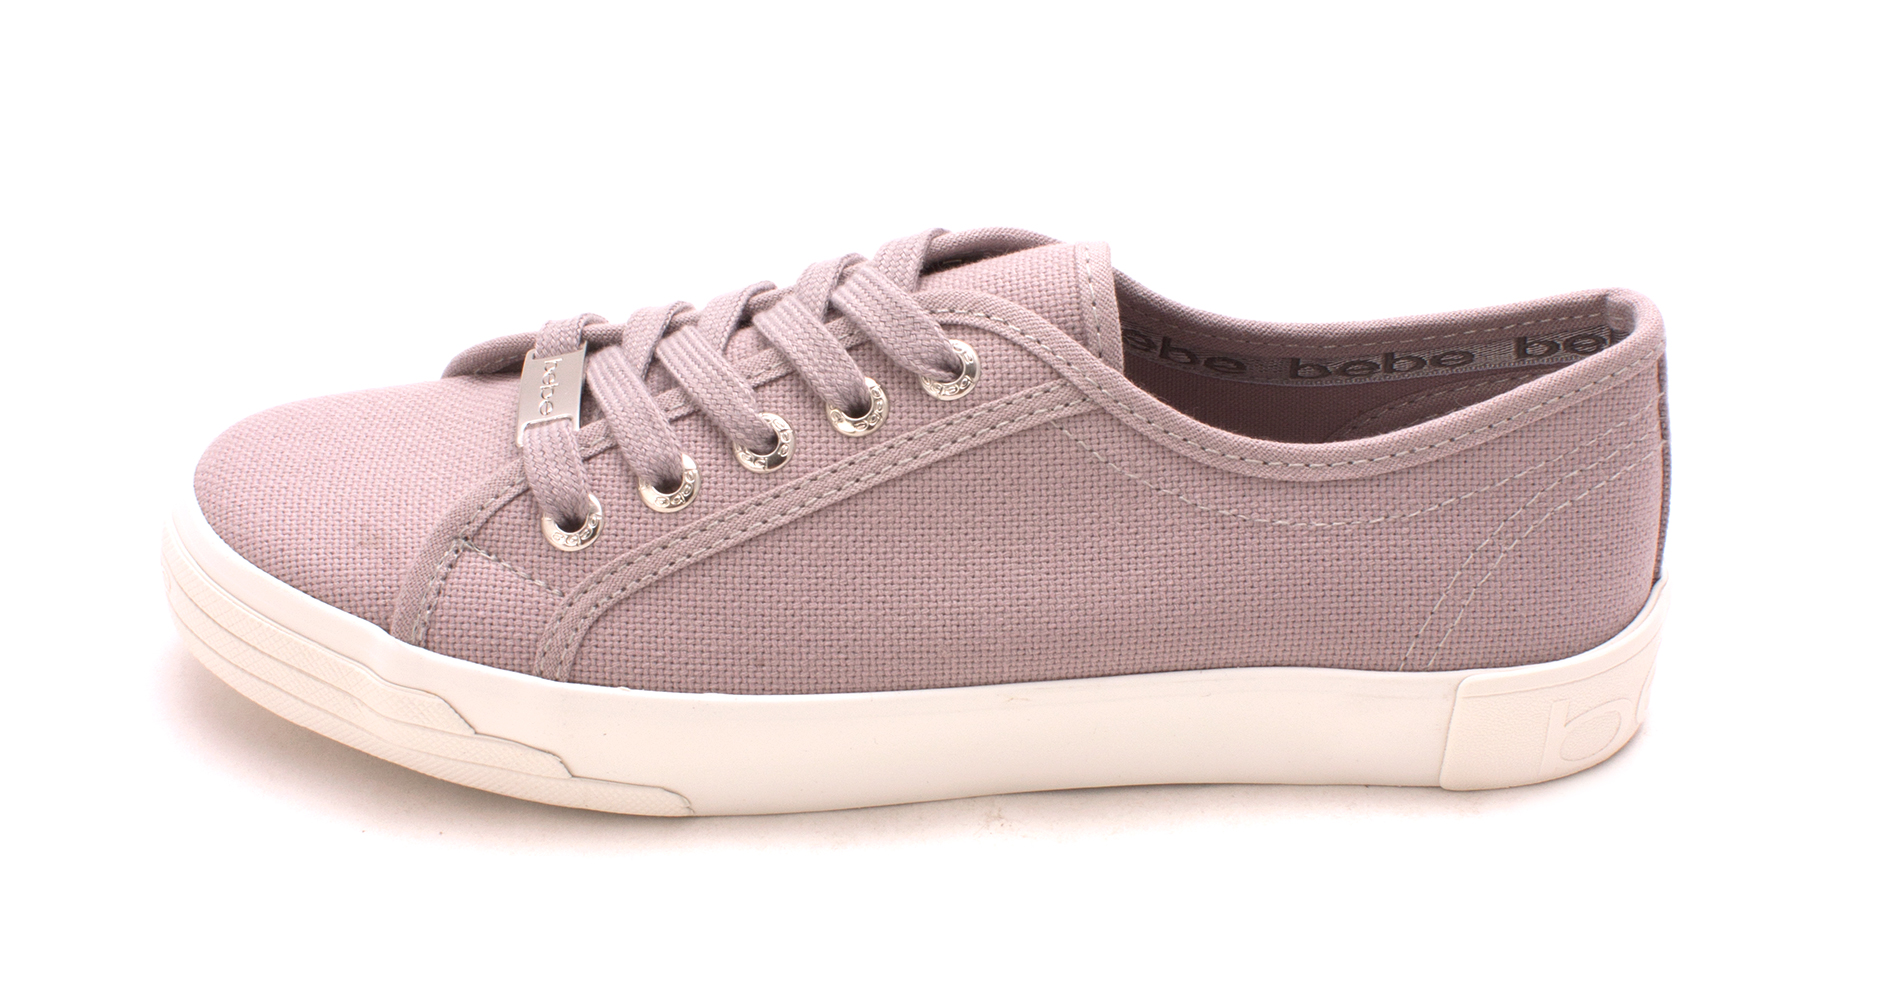 Bebe Womens Dane Low Top Lace Up... many kinds of tumblr sale online tKytXl